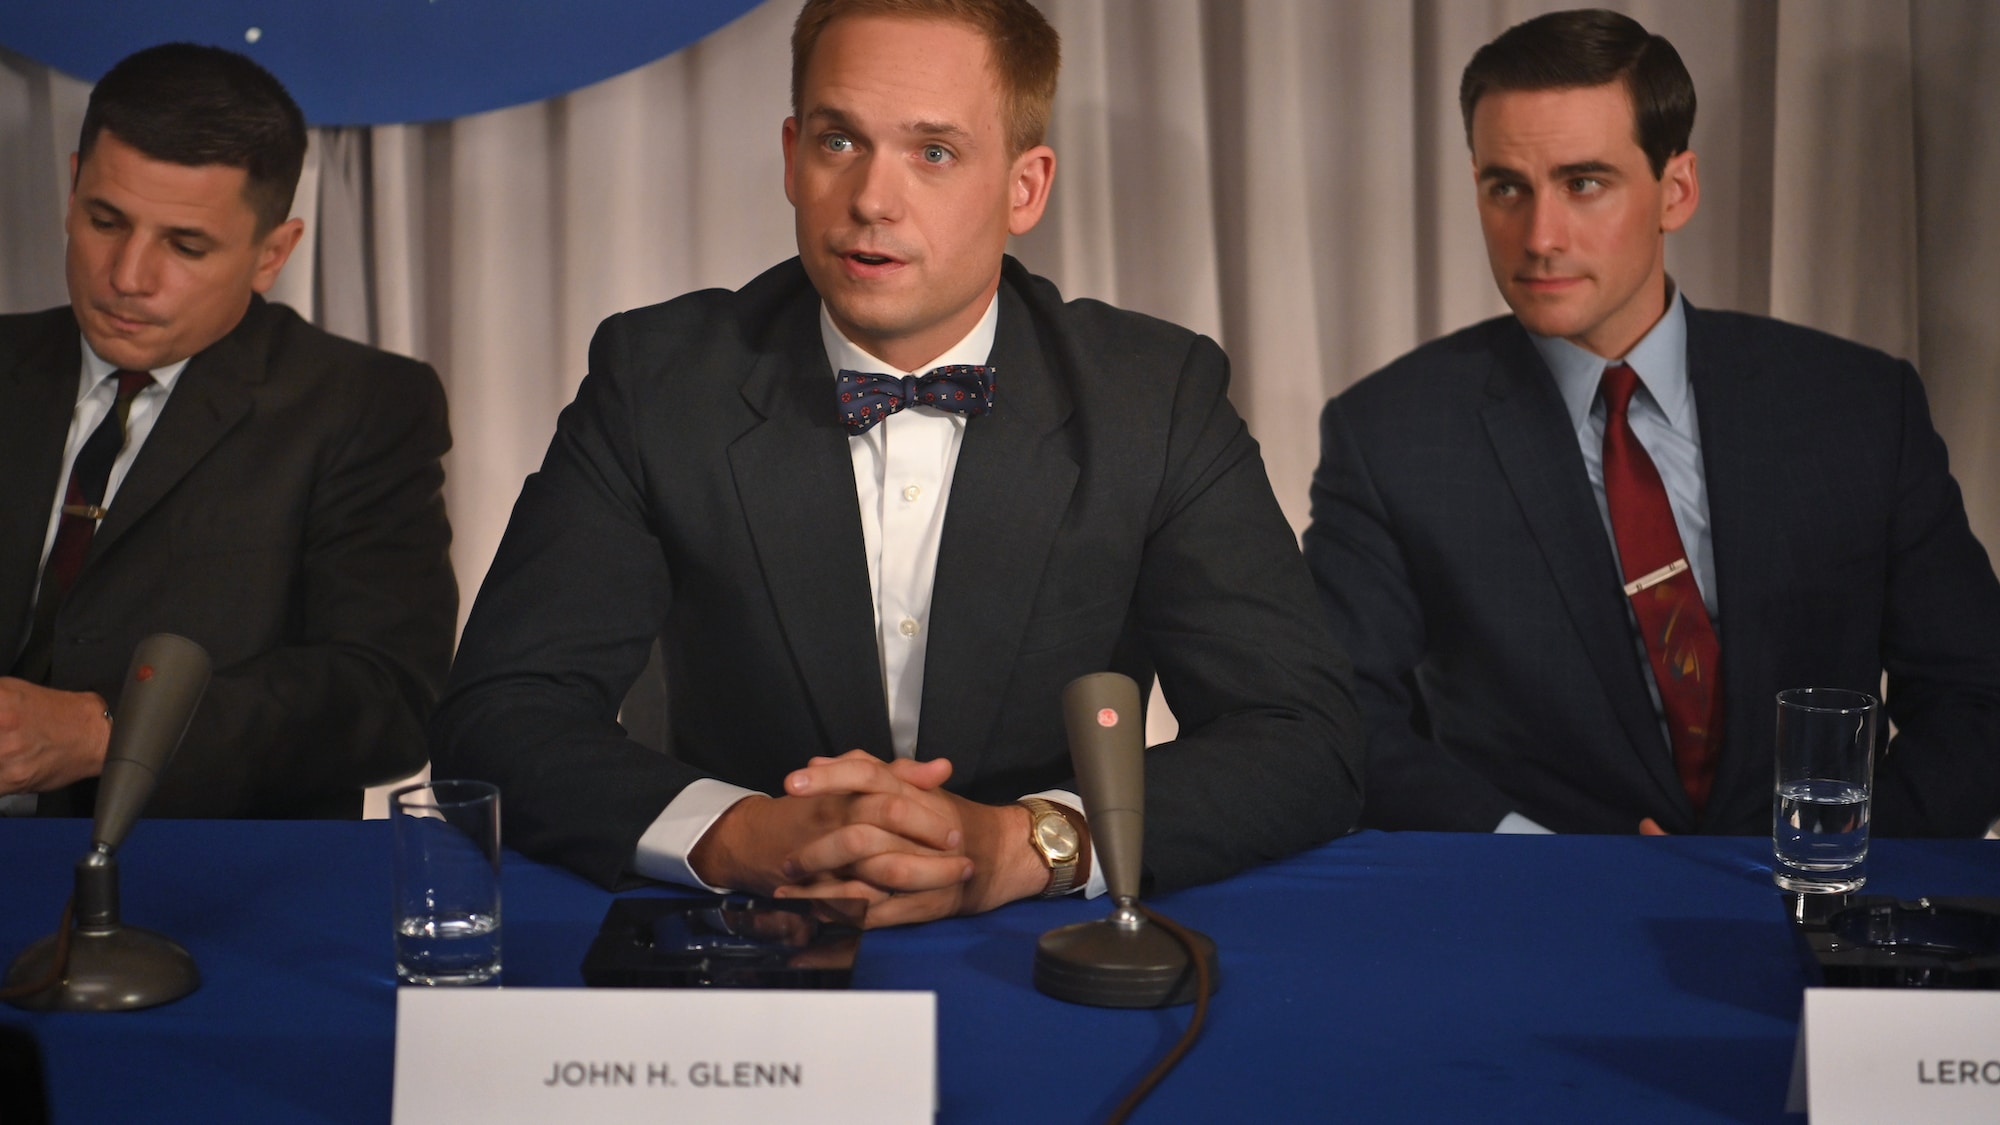 Mercury astronauts, John Glenn (center) played by Patrick J. Adams, Gus Grissom (L) played by Michael Trotter and Gordon Cooper (R) played by Colin O'Donoghue, during a press conference in National Geographic's THE RIGHT STUFF streaming on Disney+.